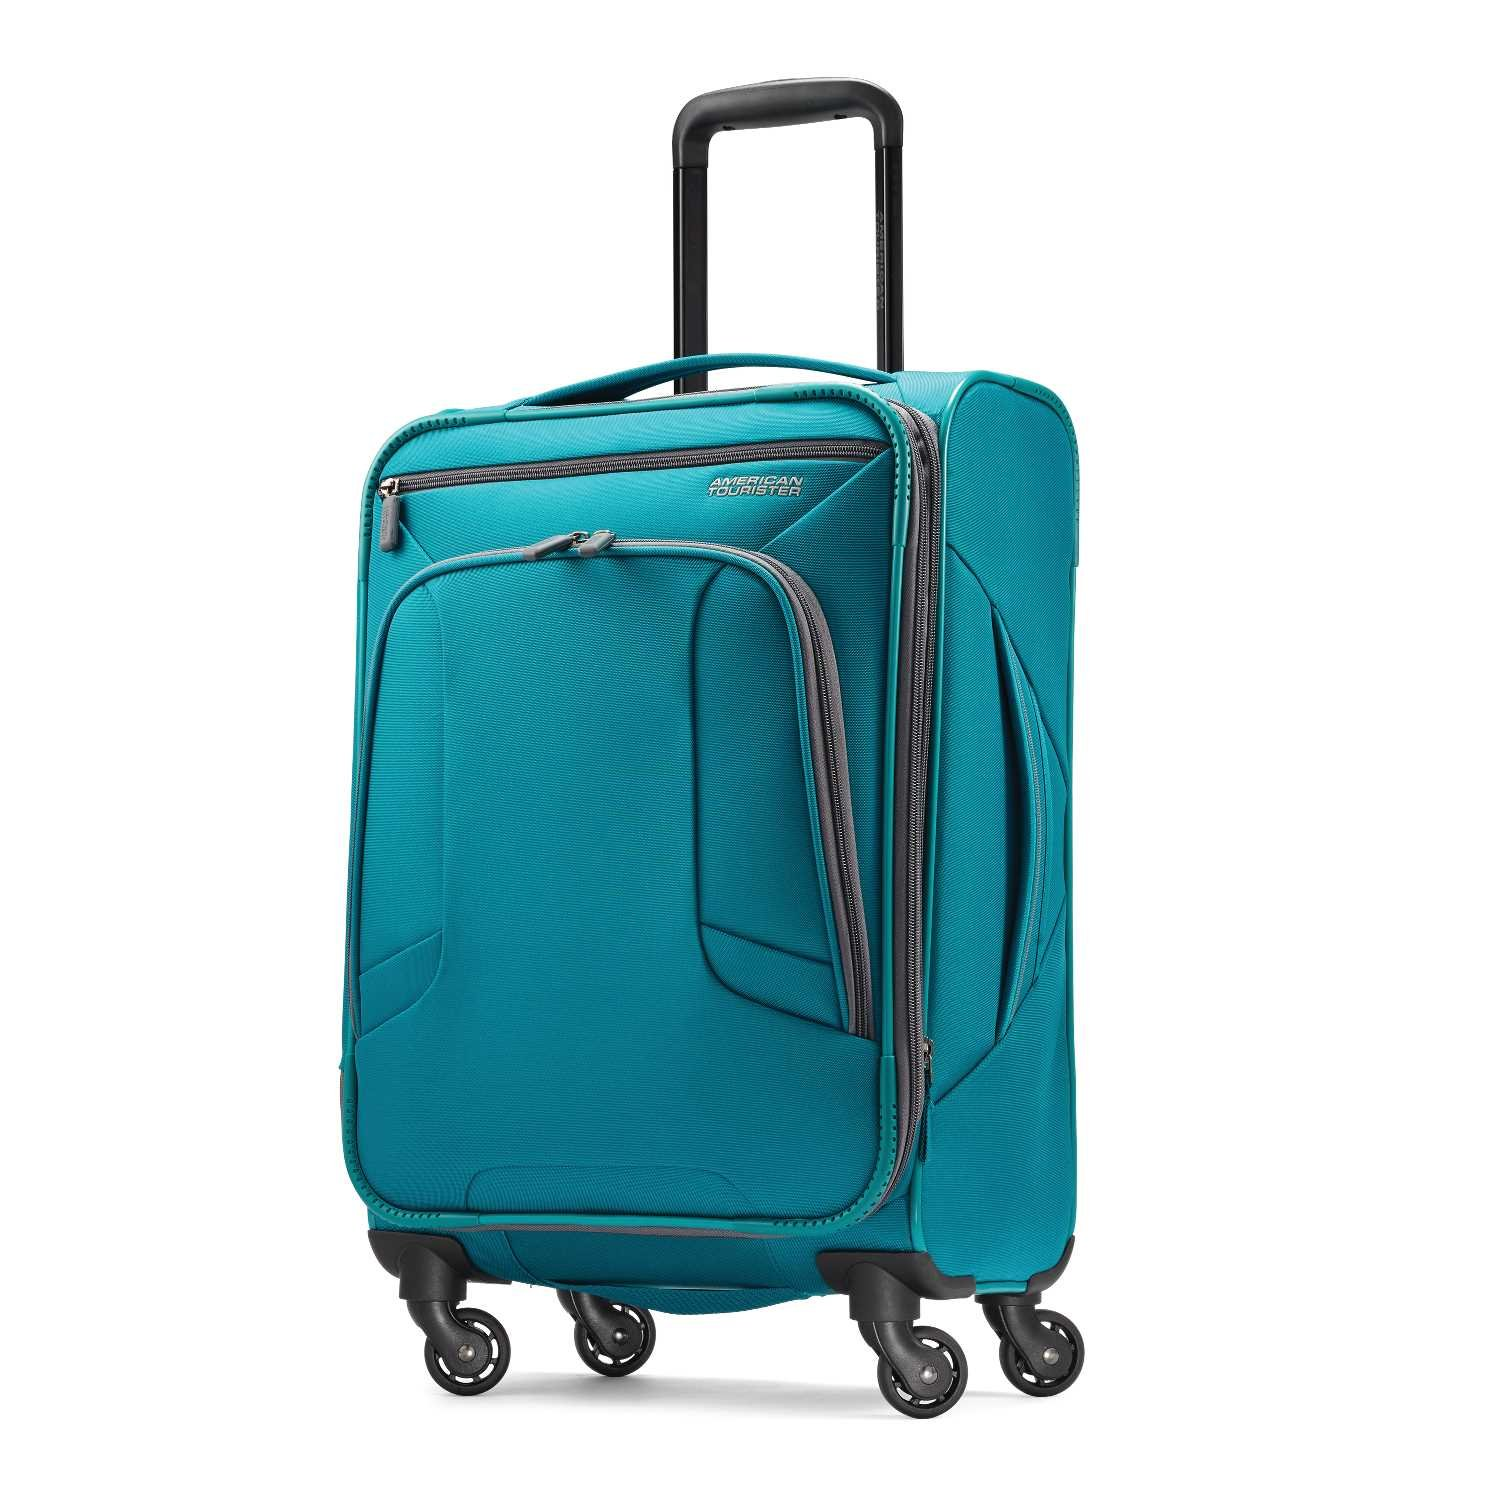 American Tourister Carry-On, Teal by American Tourister